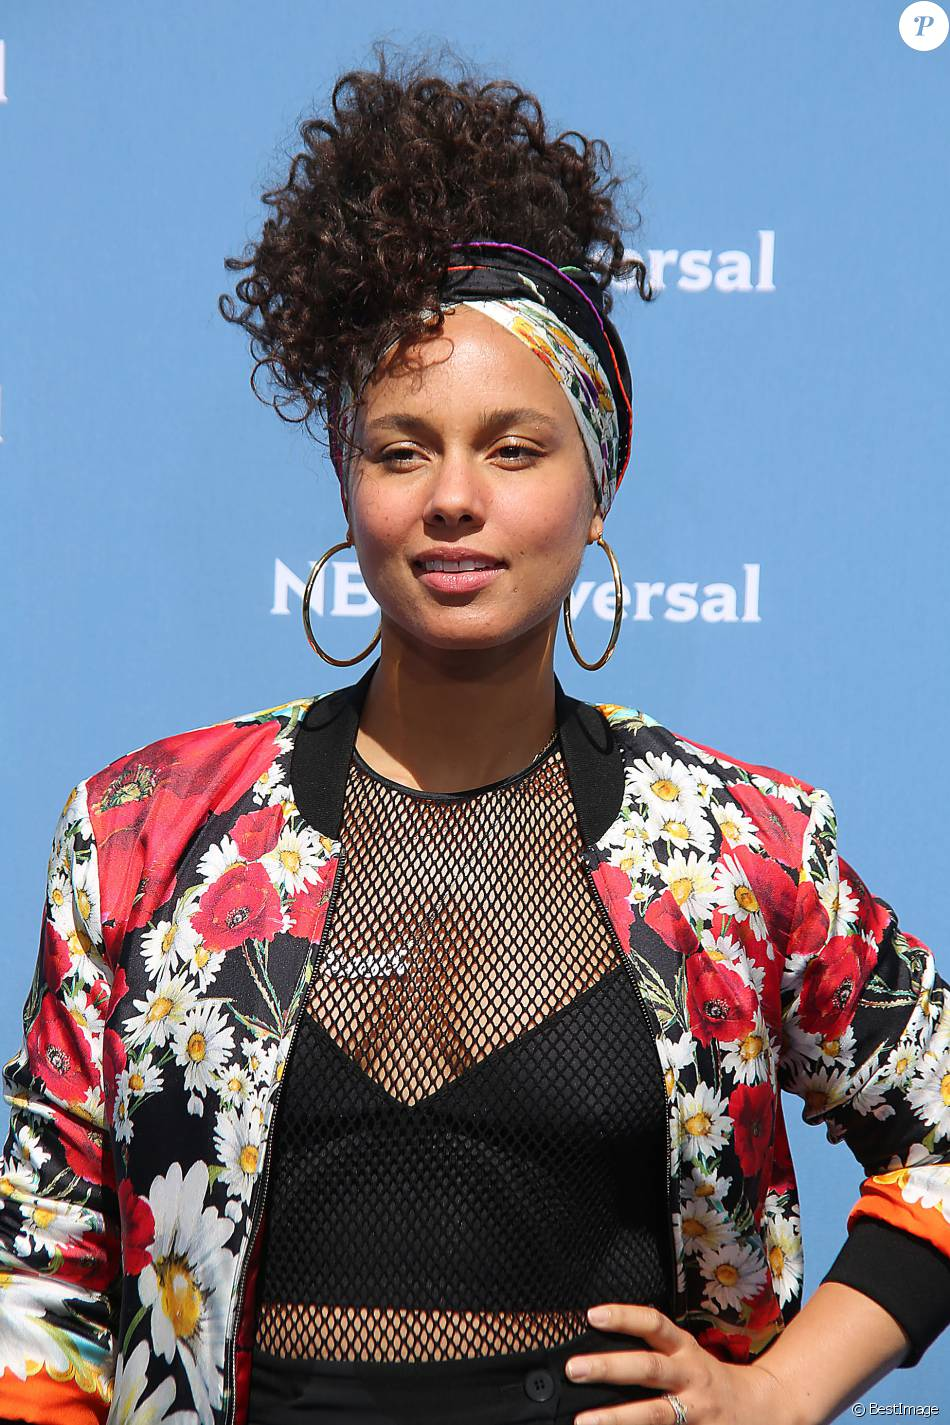 "Alicia Keys au photocall de l'événement ""NBC Universal Upfront"" au Rockfeller Center à New York le 16 mai 2016. © Sonia Moskowitz/Globe Photos via ZUMA Wire / Bestimage"